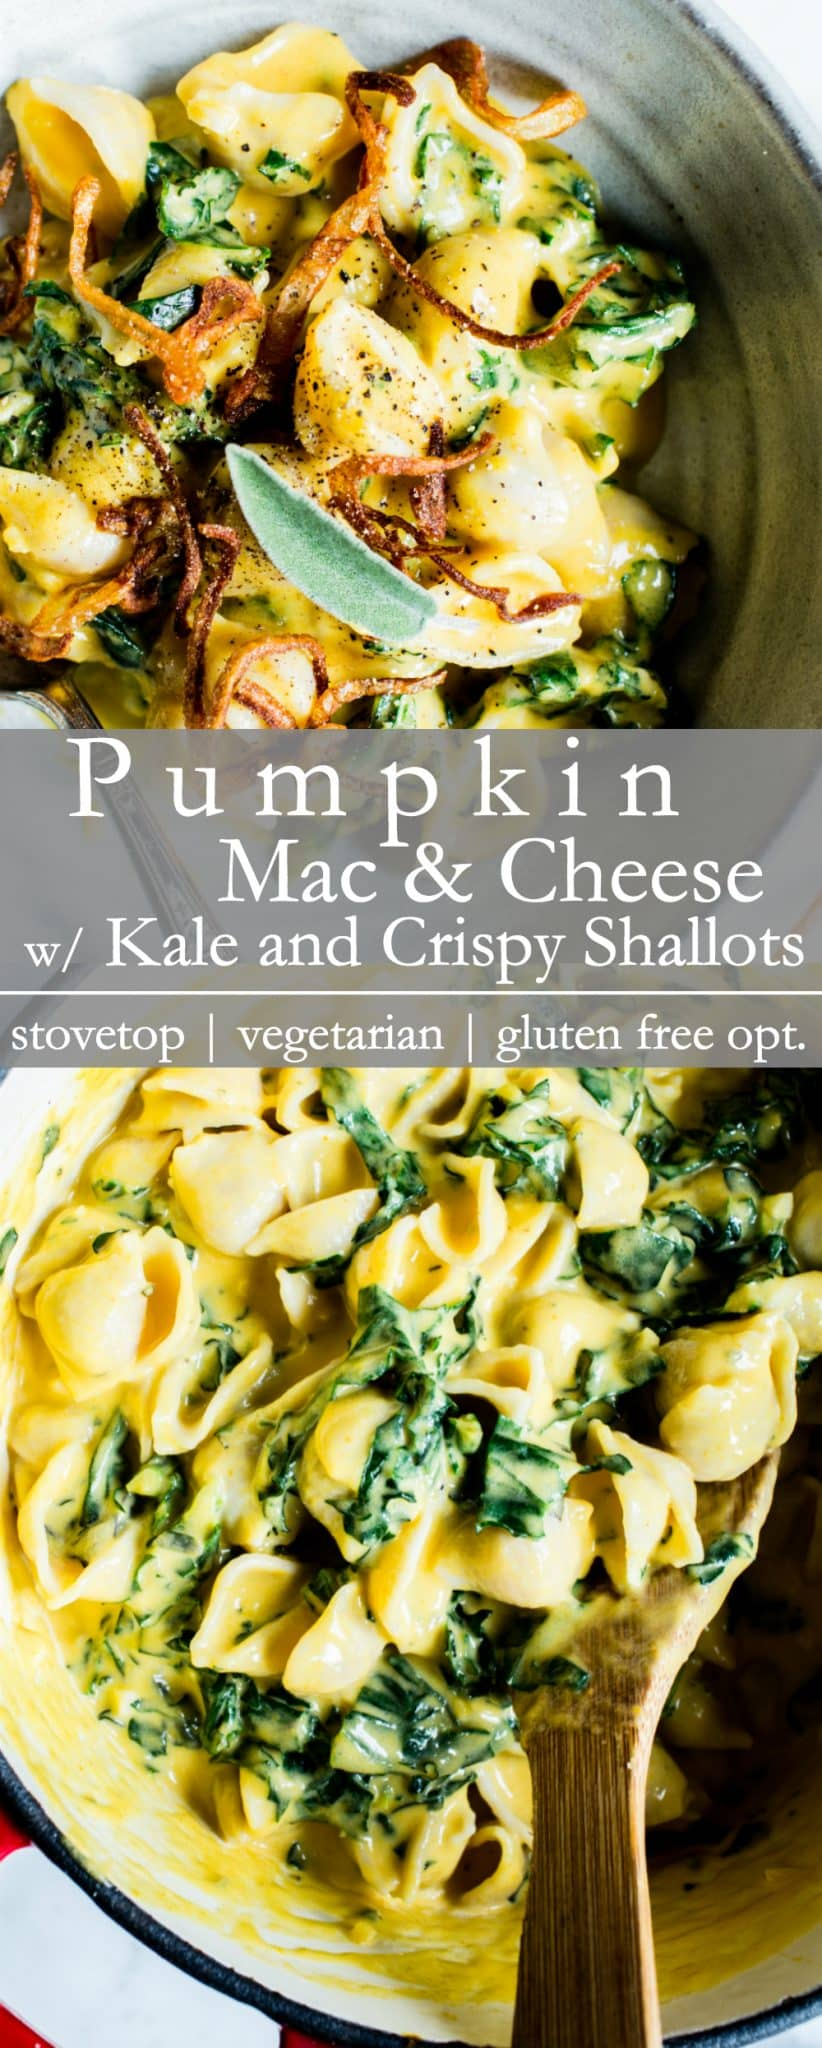 Flavor packed and texture rich with sneaky veggies, Stovetop Pumpkin Mac and Cheese with Kale and Crispy Shallots comes together quick and is freezer friendly. | #vegetarian and #glutenfree optional #MacandCheese #Recipe